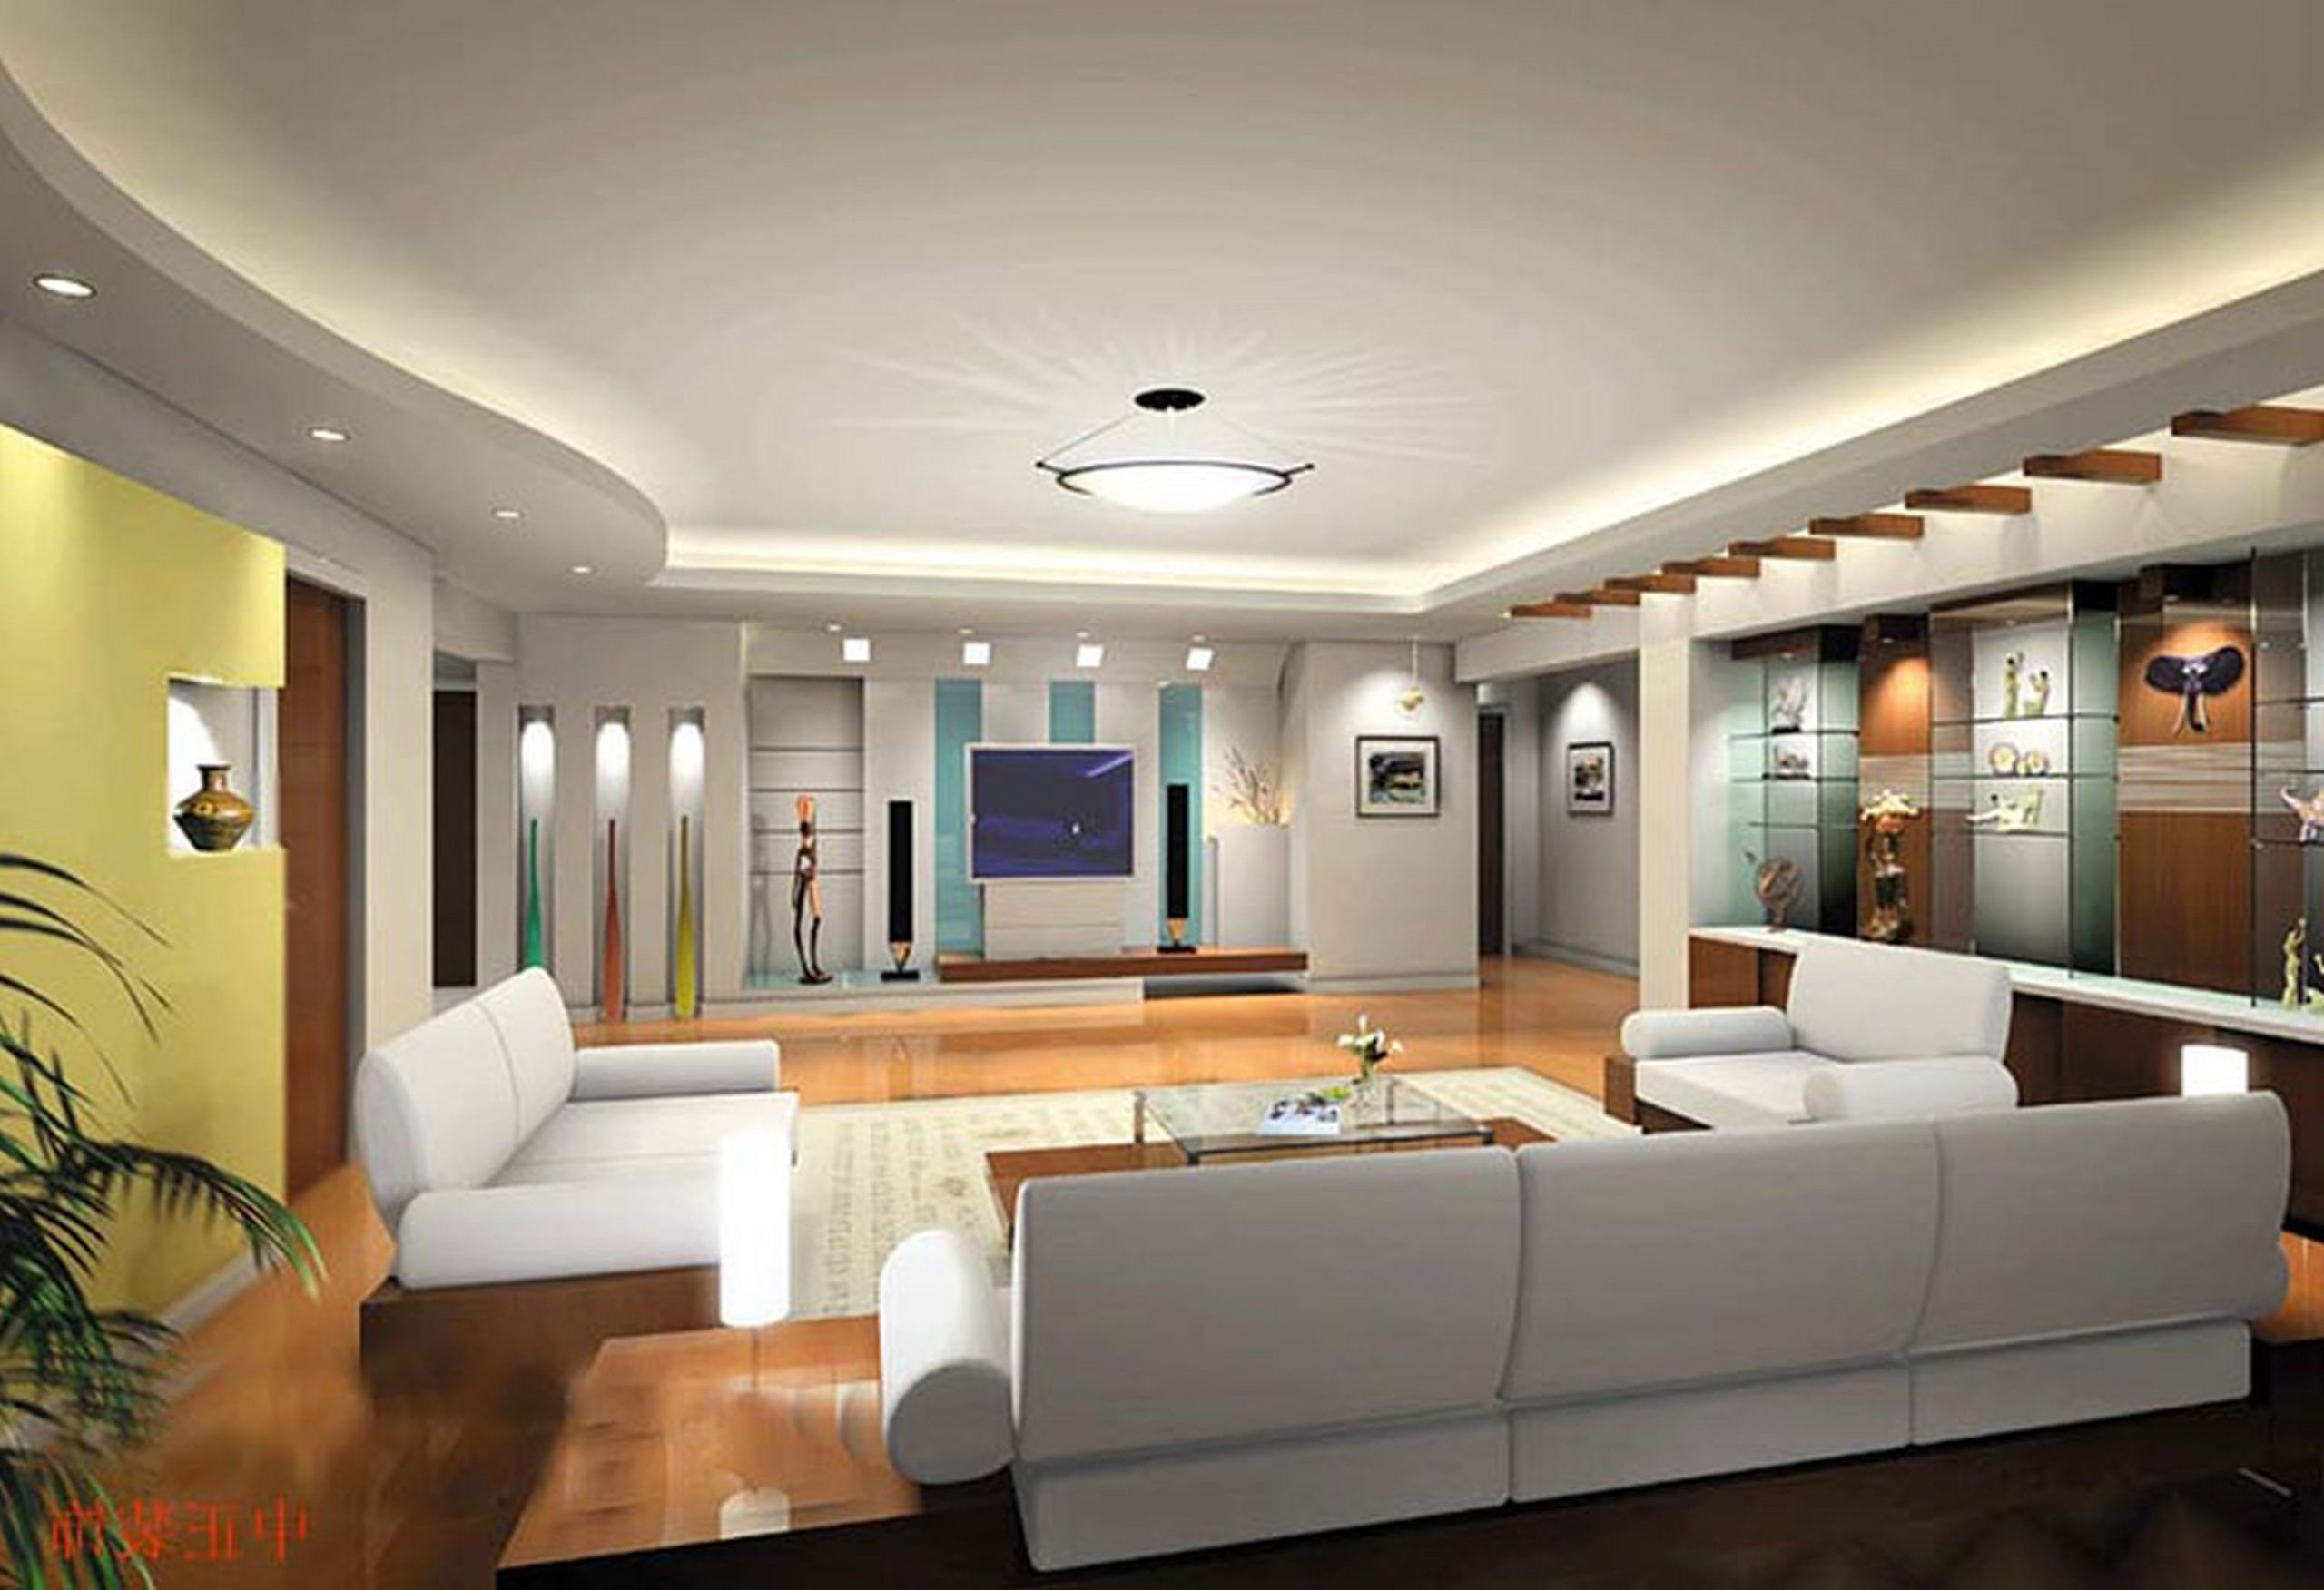 Ceiling Decorations For Living Room Low Ceiling Living Room De